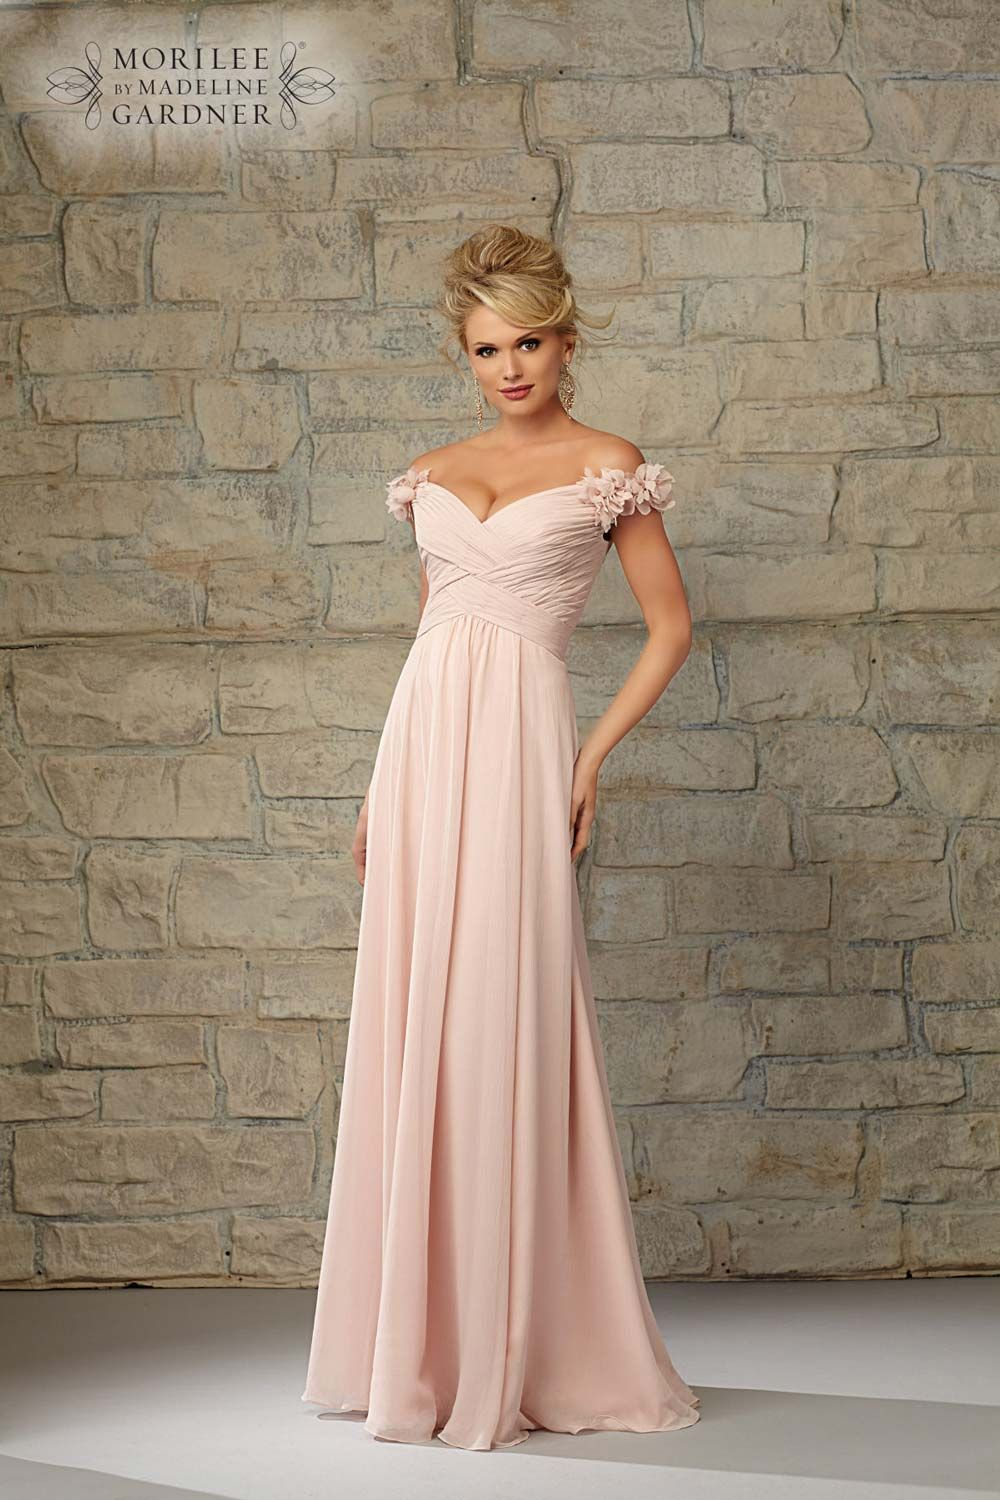 Pale Pink Bridesmaid Dresses  19 Delightful Styles  f44cf8909bc4